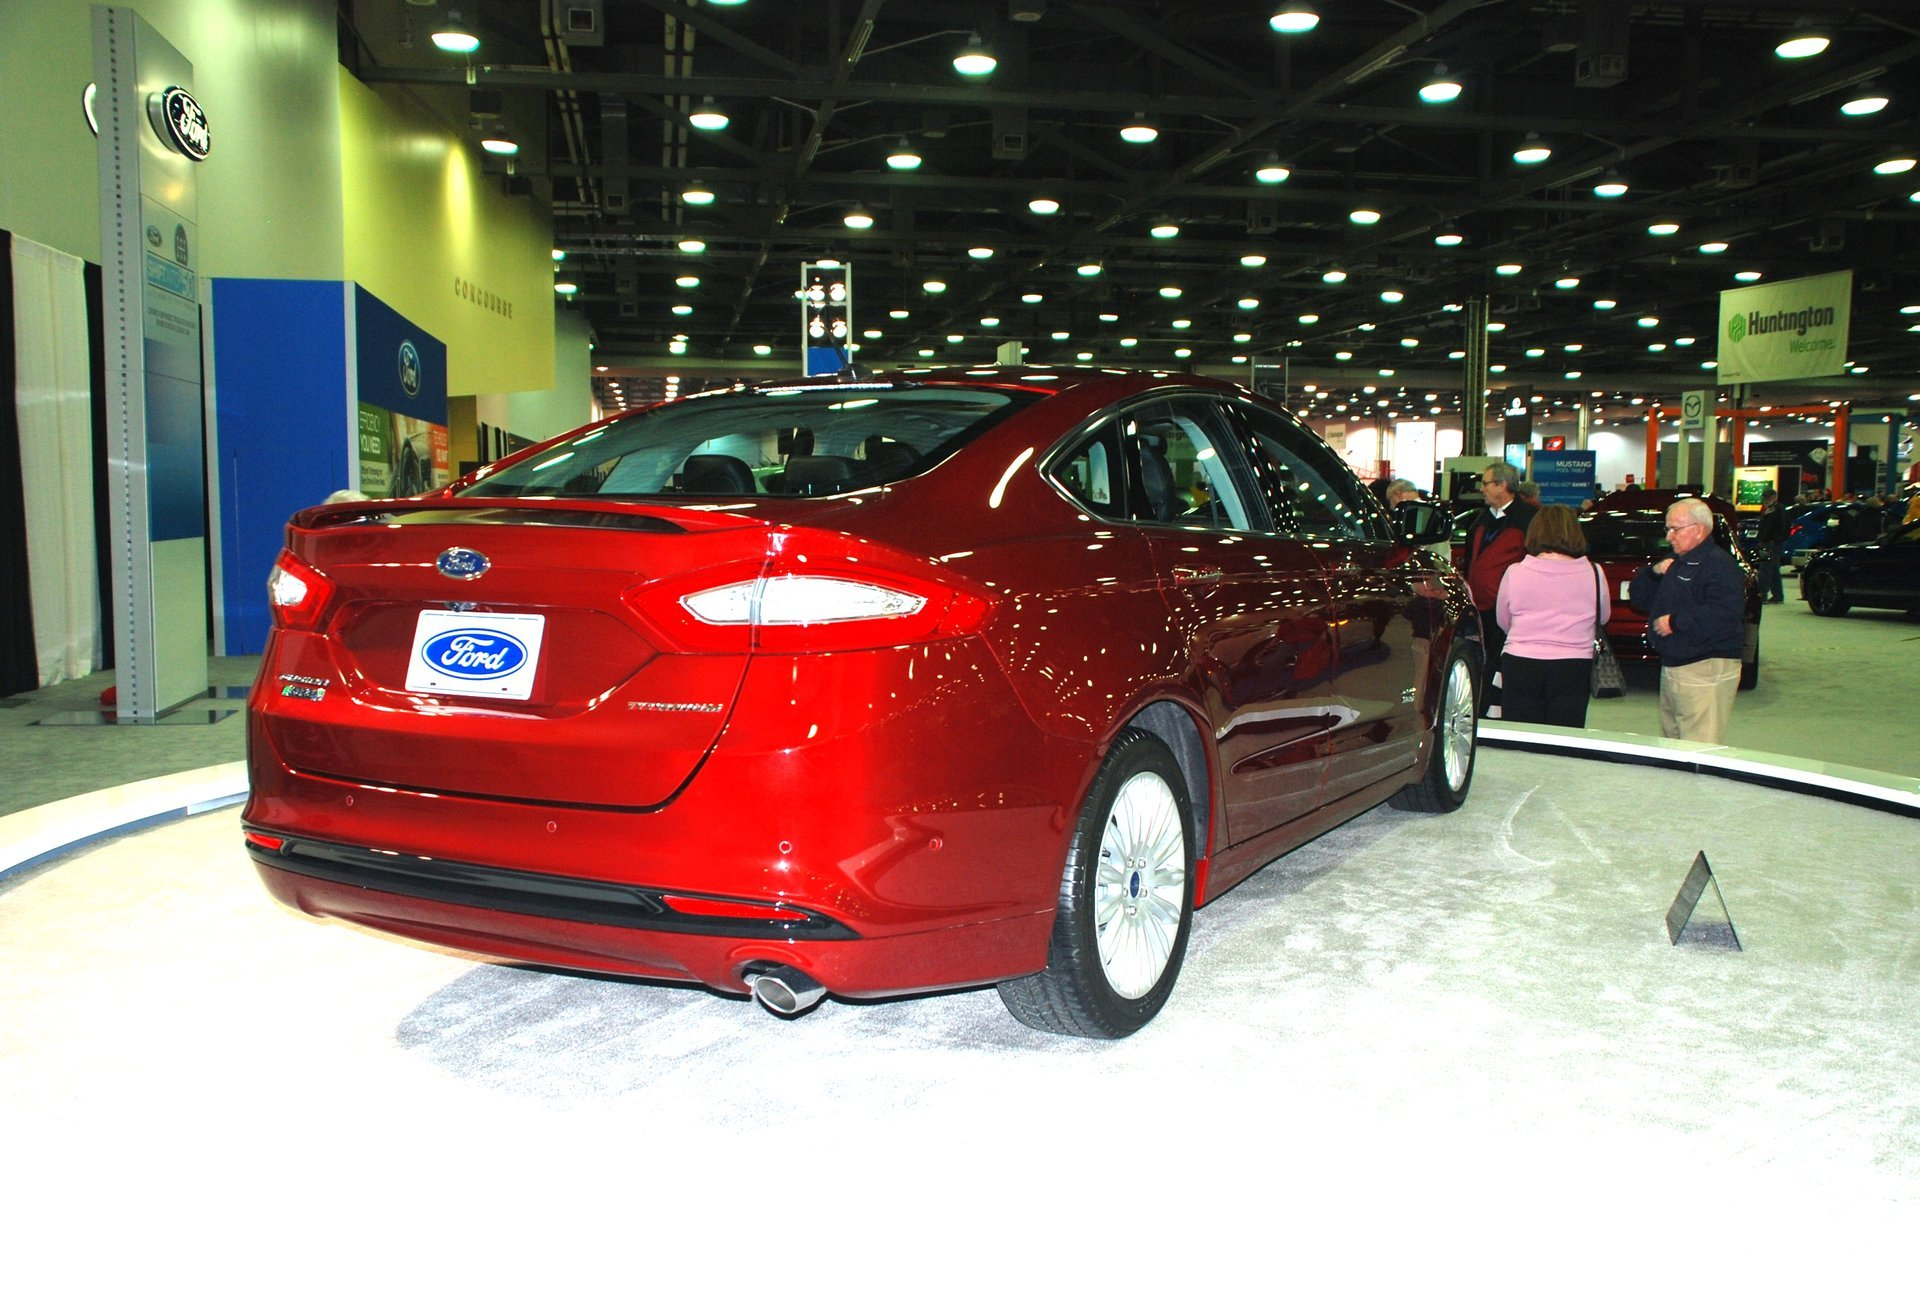 Columbus International Auto Show in Ohio - Best Season 2020